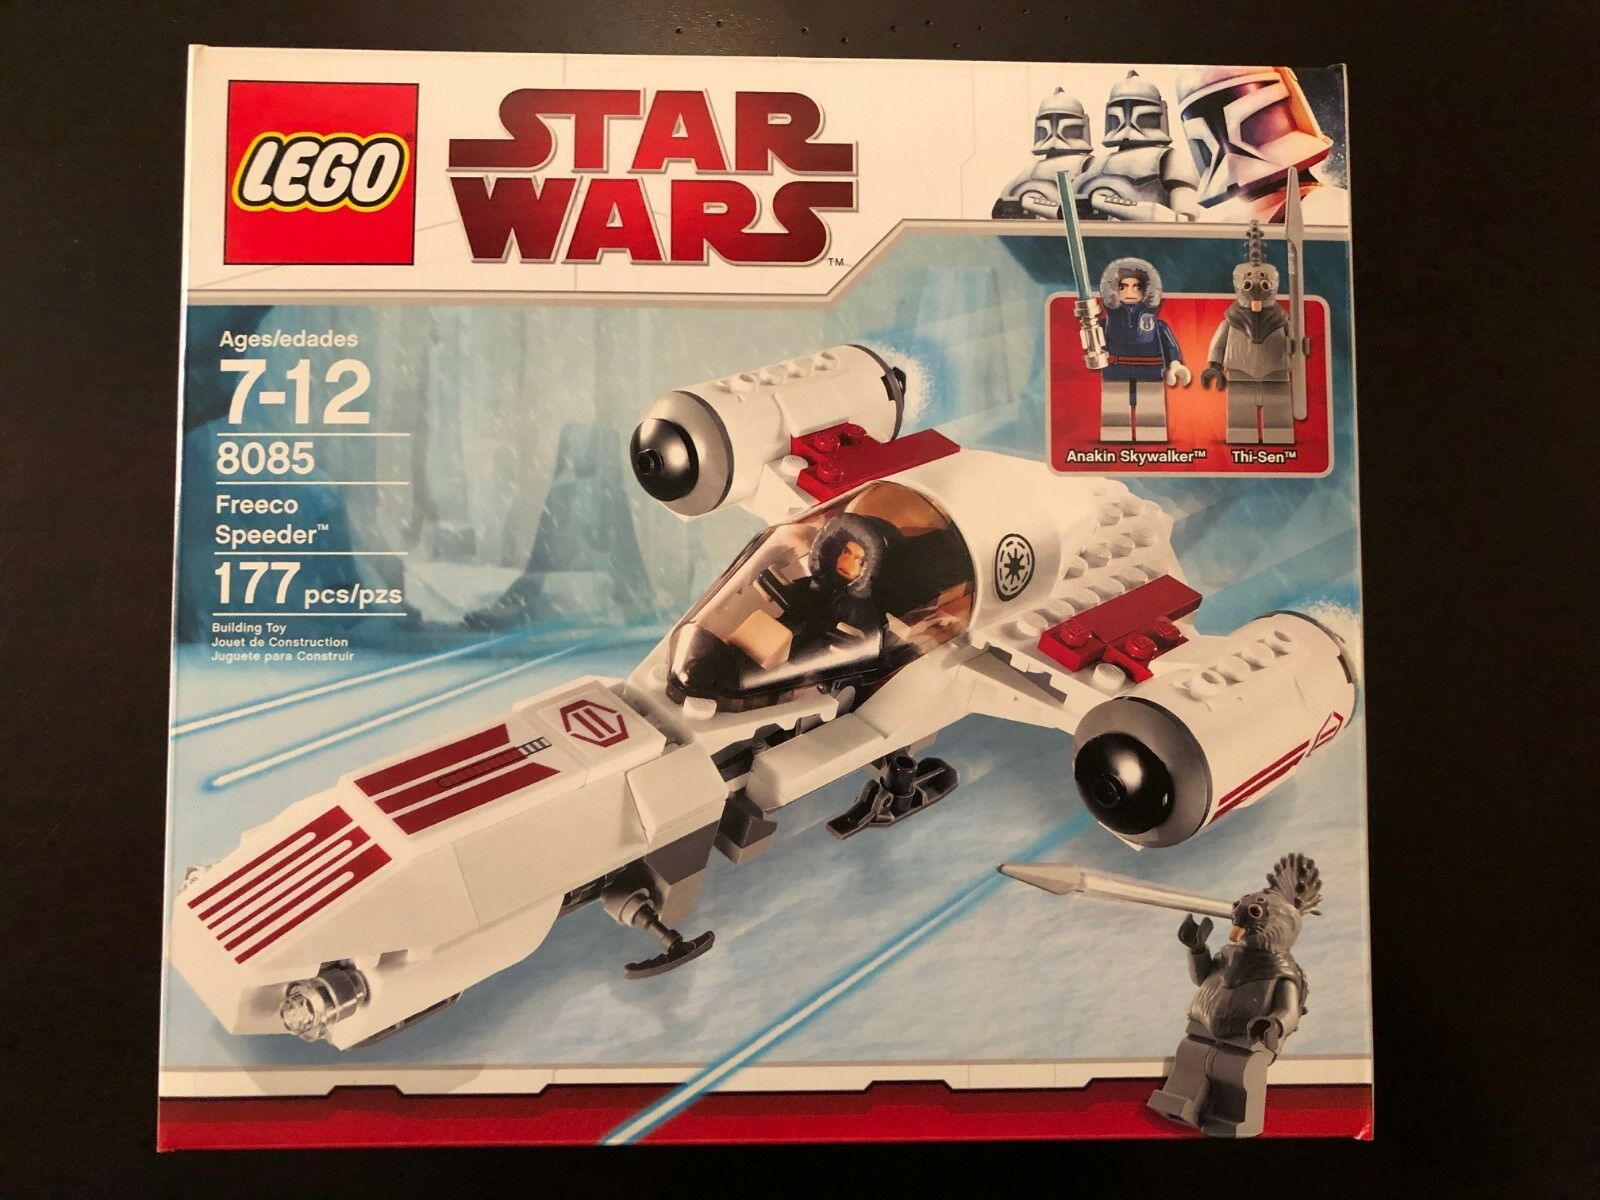 LEGO 8085 Star Wars Freeco Speeder-Damage Speeder-Damage Speeder-Damage Box 1482ed